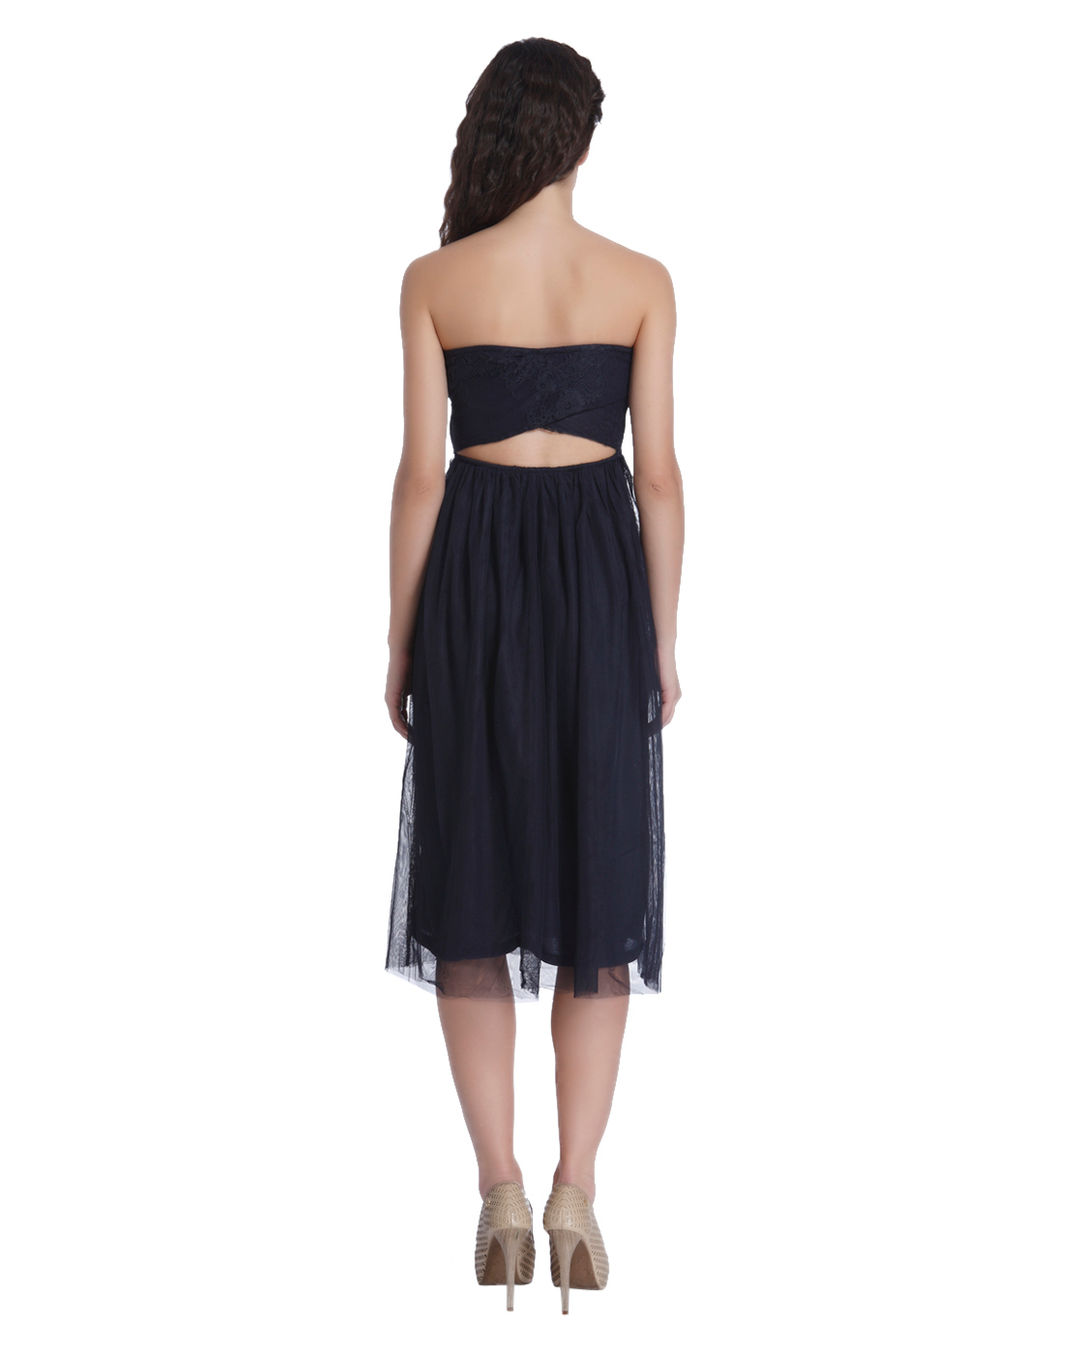 172c0a1298ba9 Buy ONLY Navy Blue Tube Lace DressOnline | ONLY